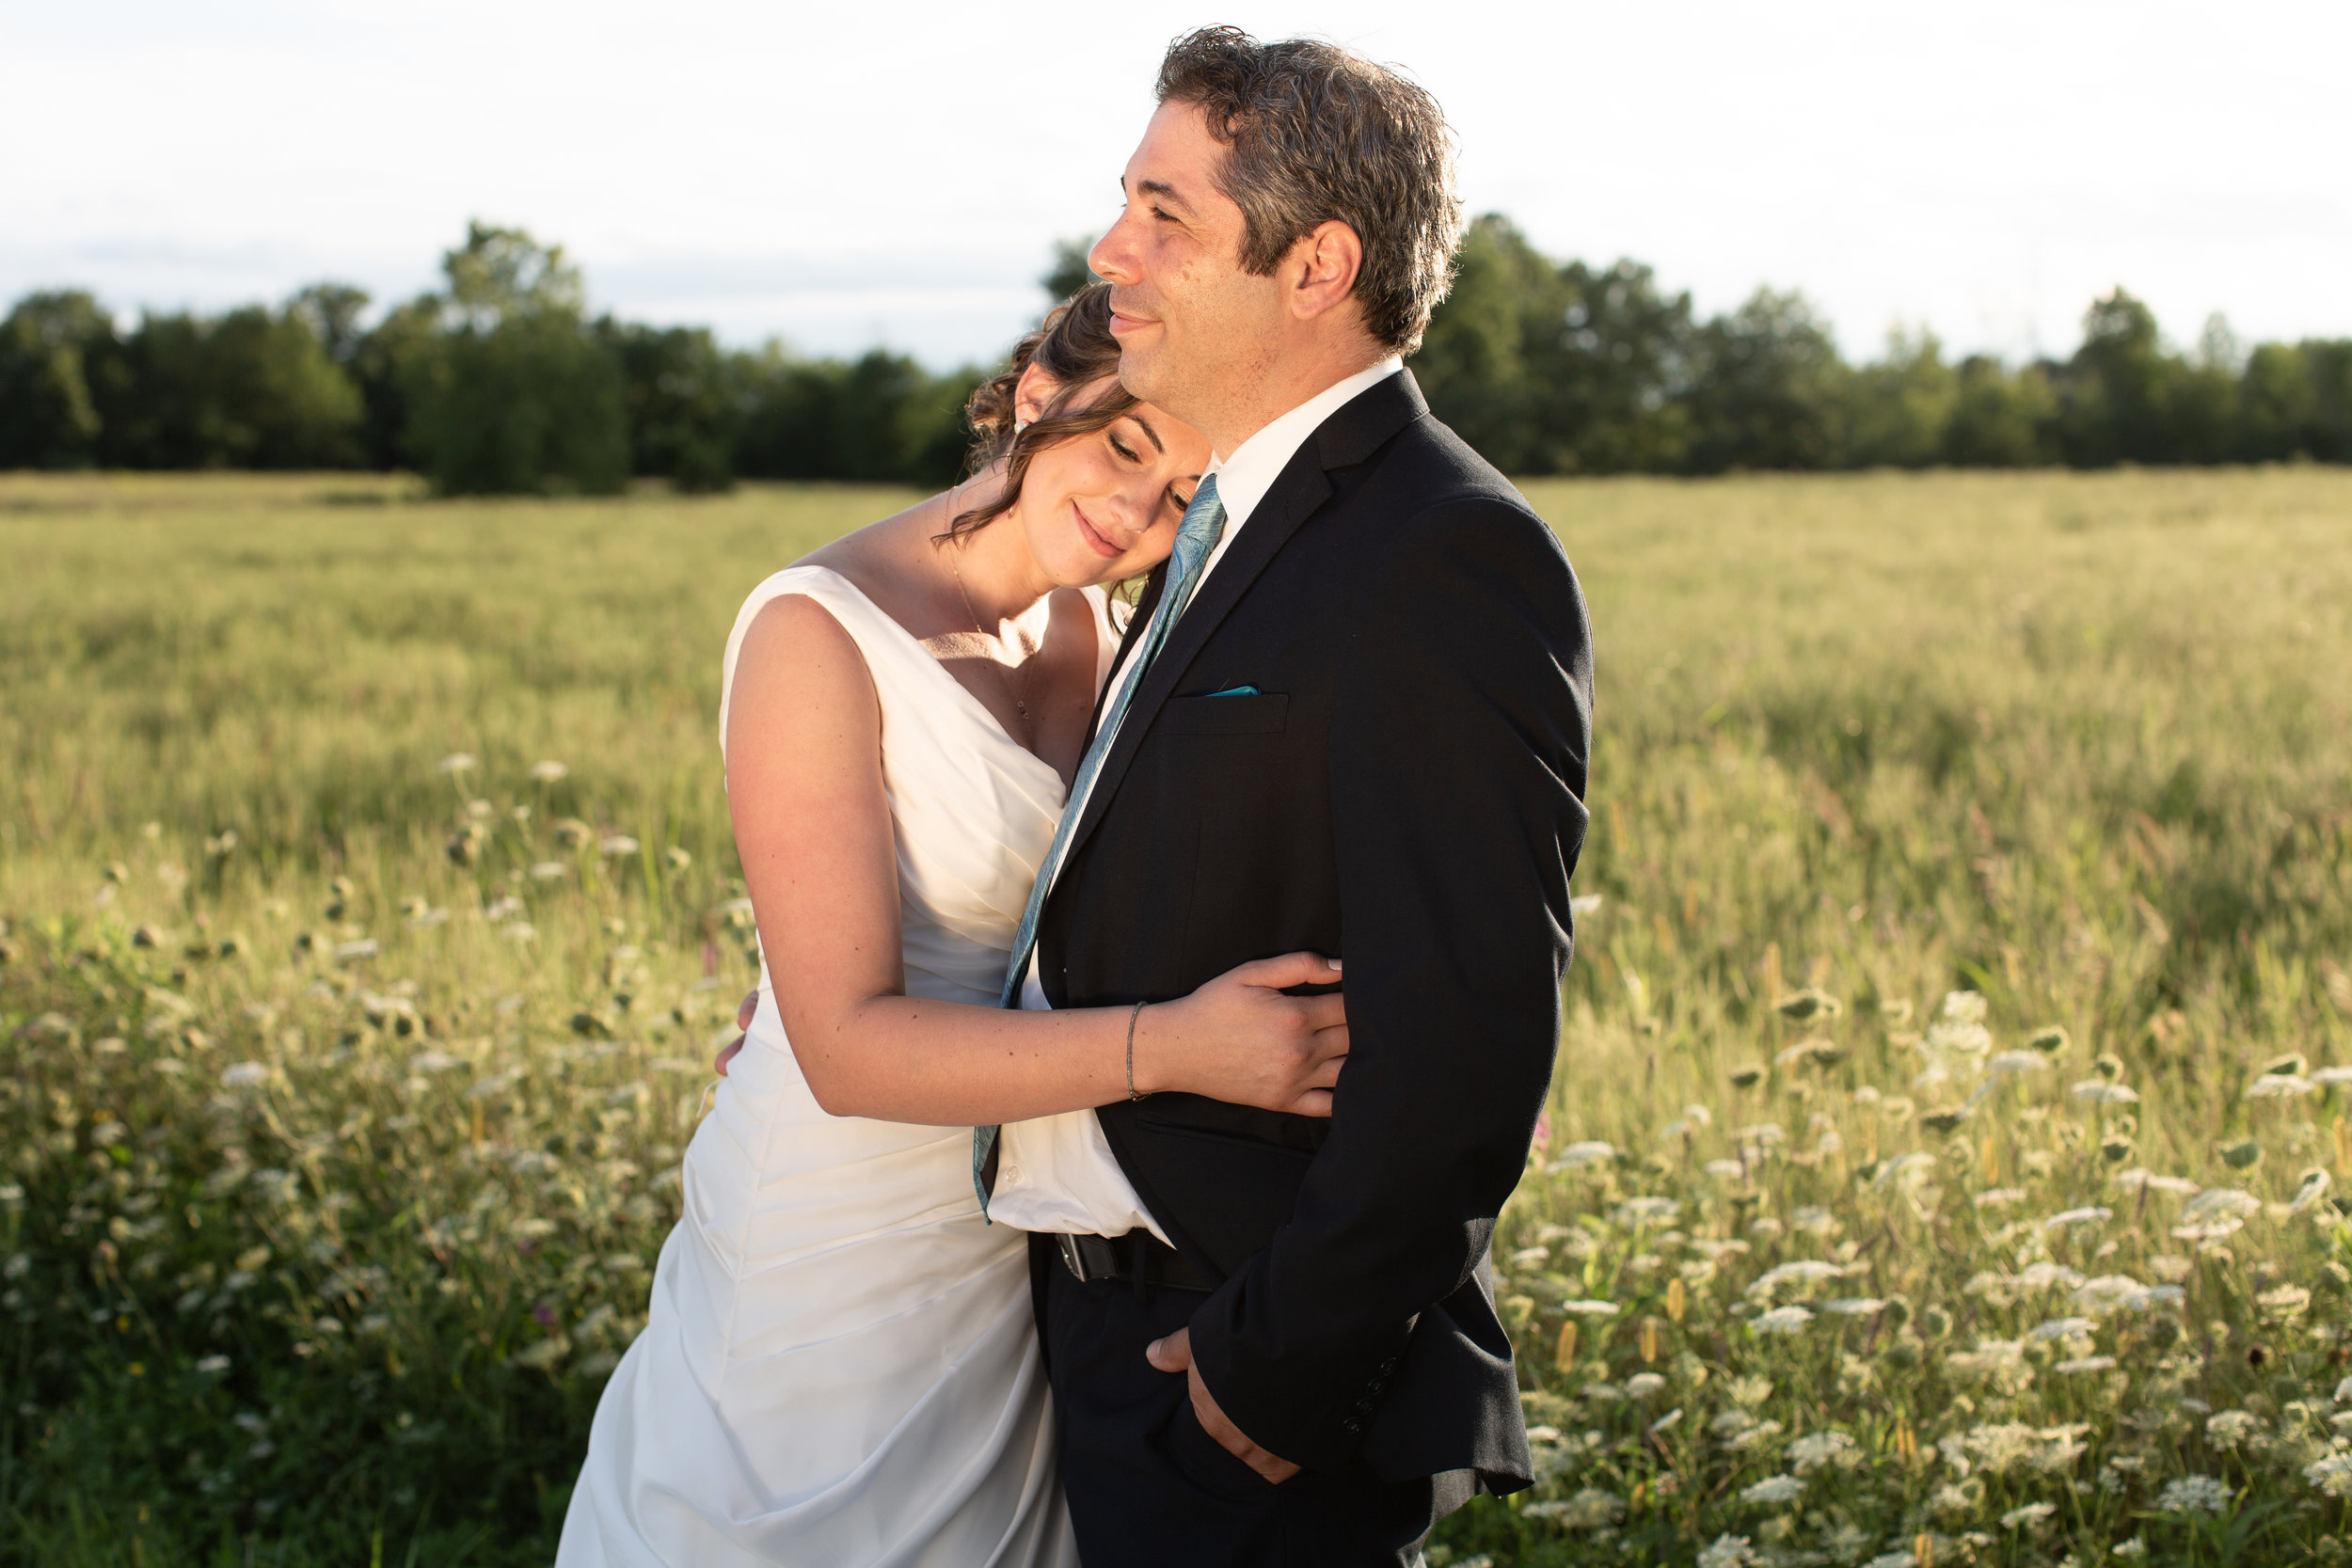 Leah & Erich Campolongo  An intimate wedding in Schodack, New York